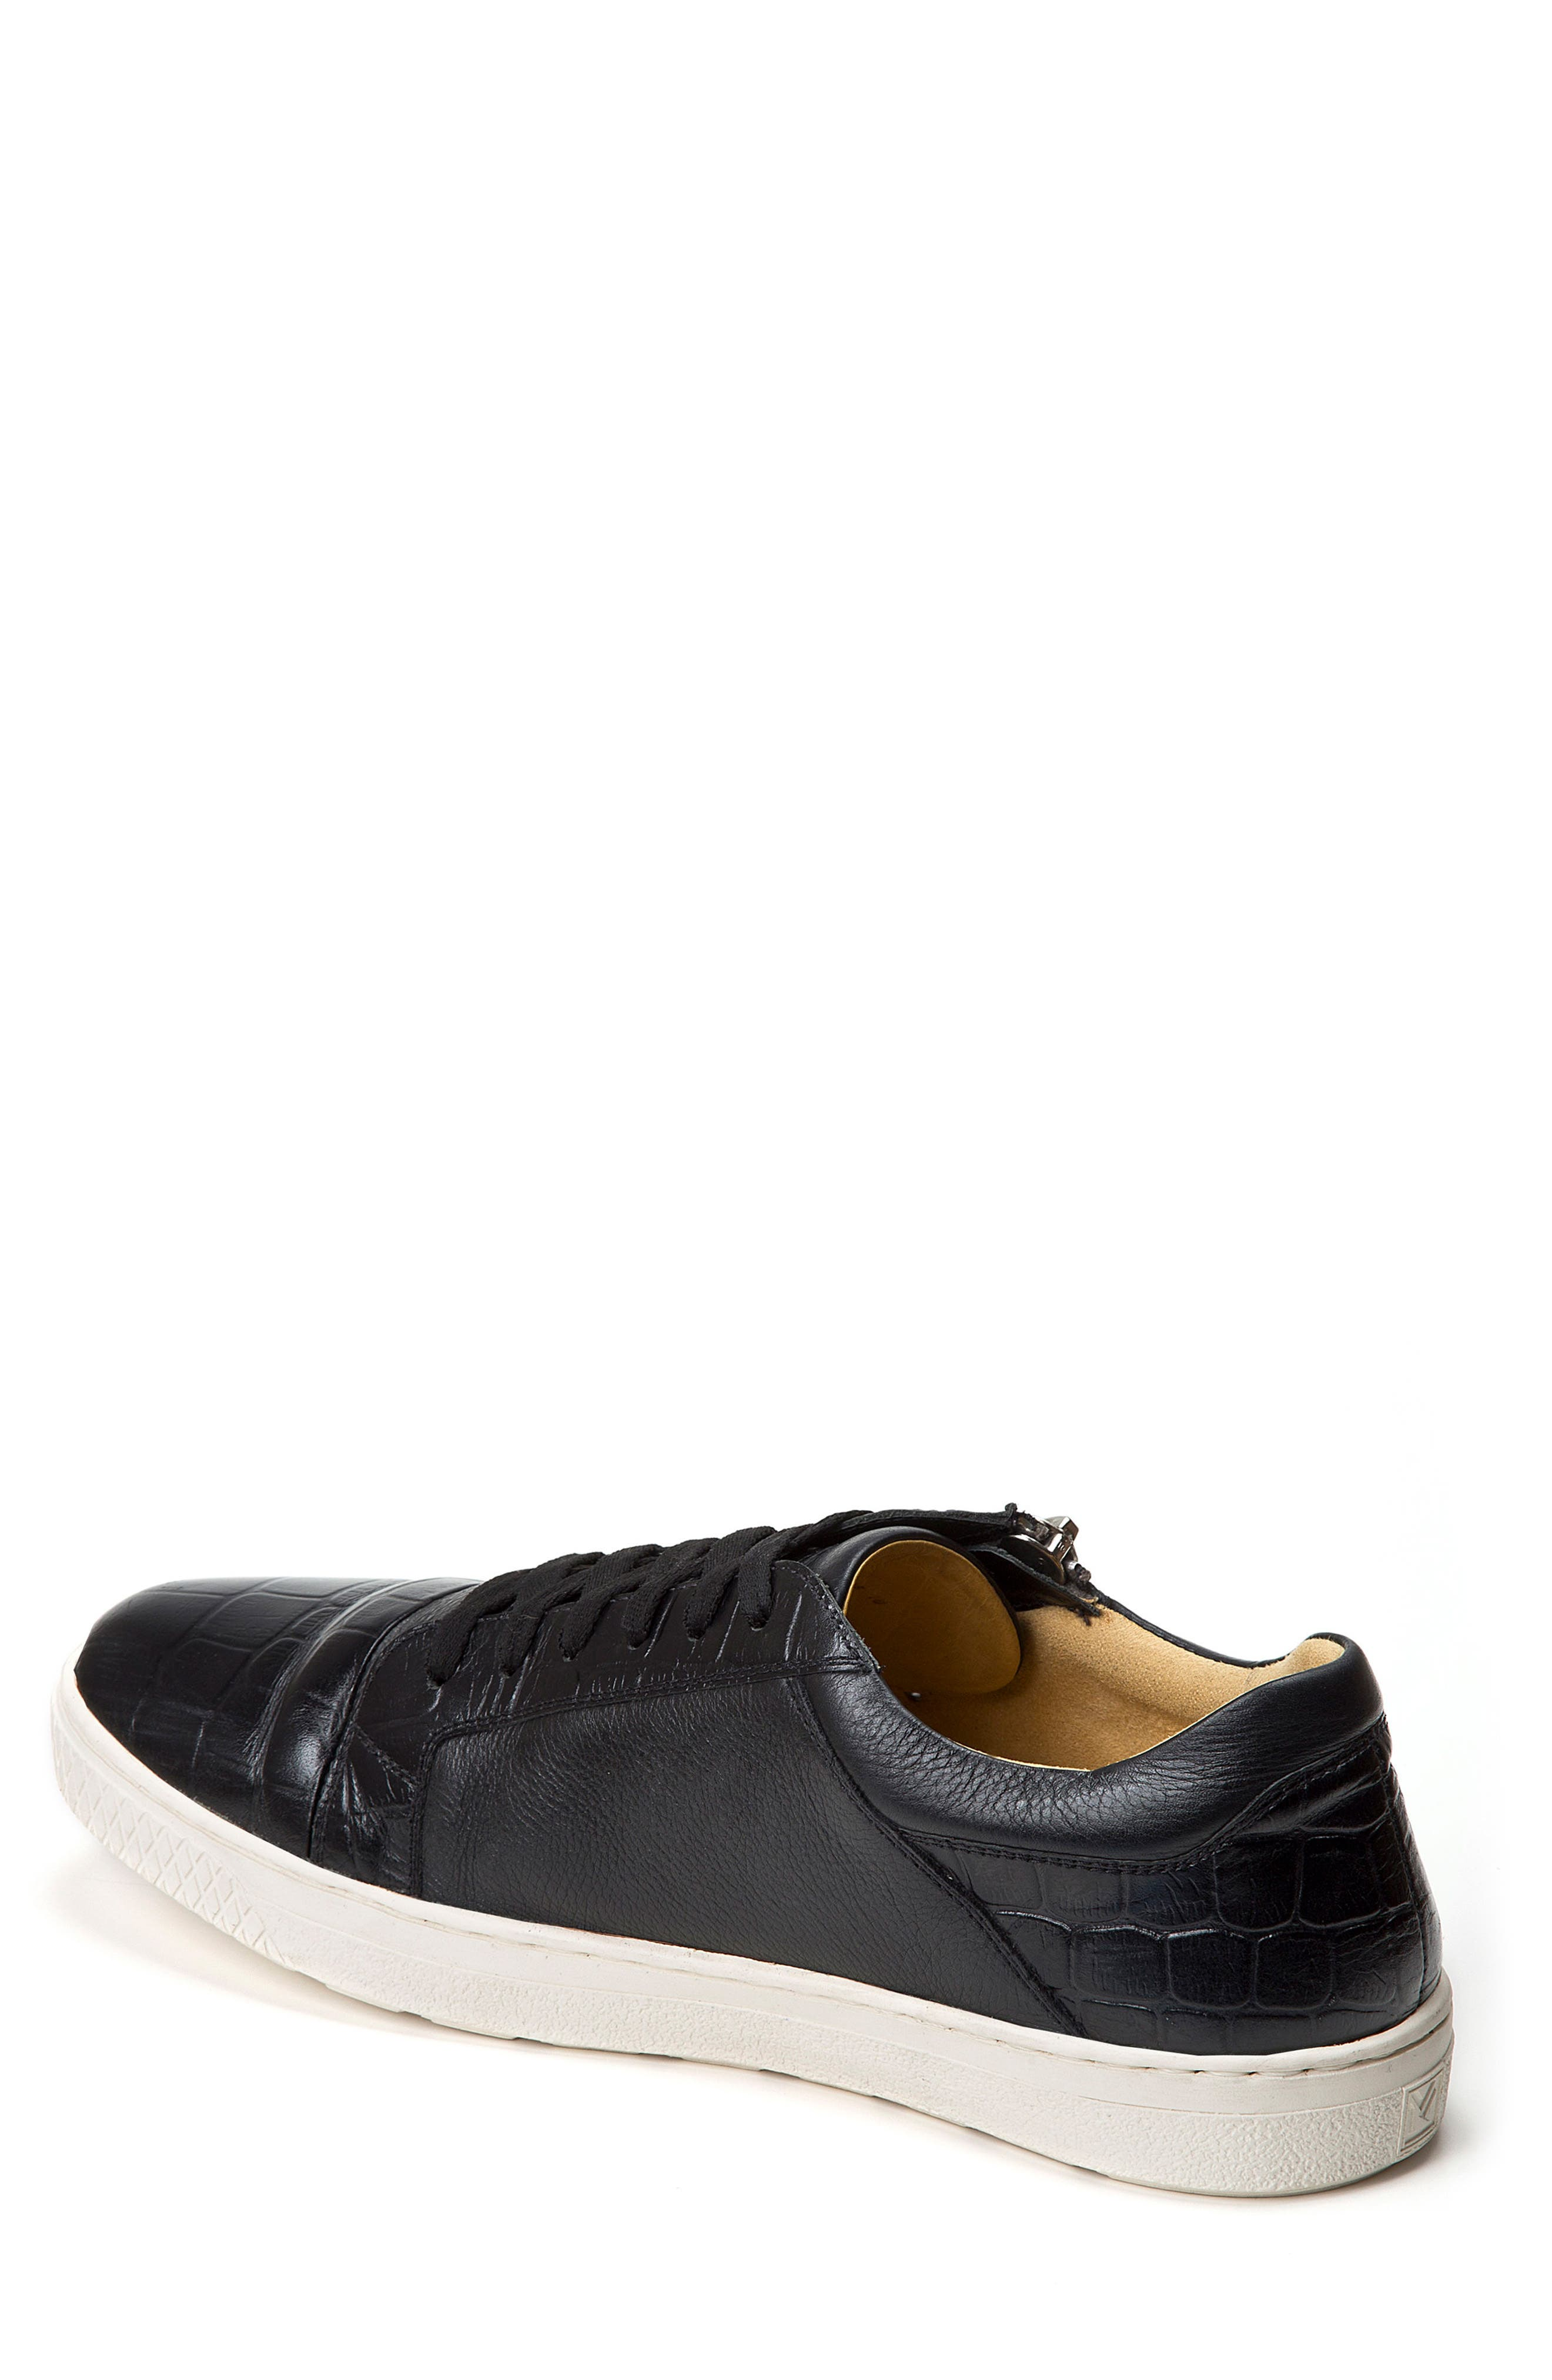 Cassius Side Zip Sneaker,                             Alternate thumbnail 2, color,                             Black Leather